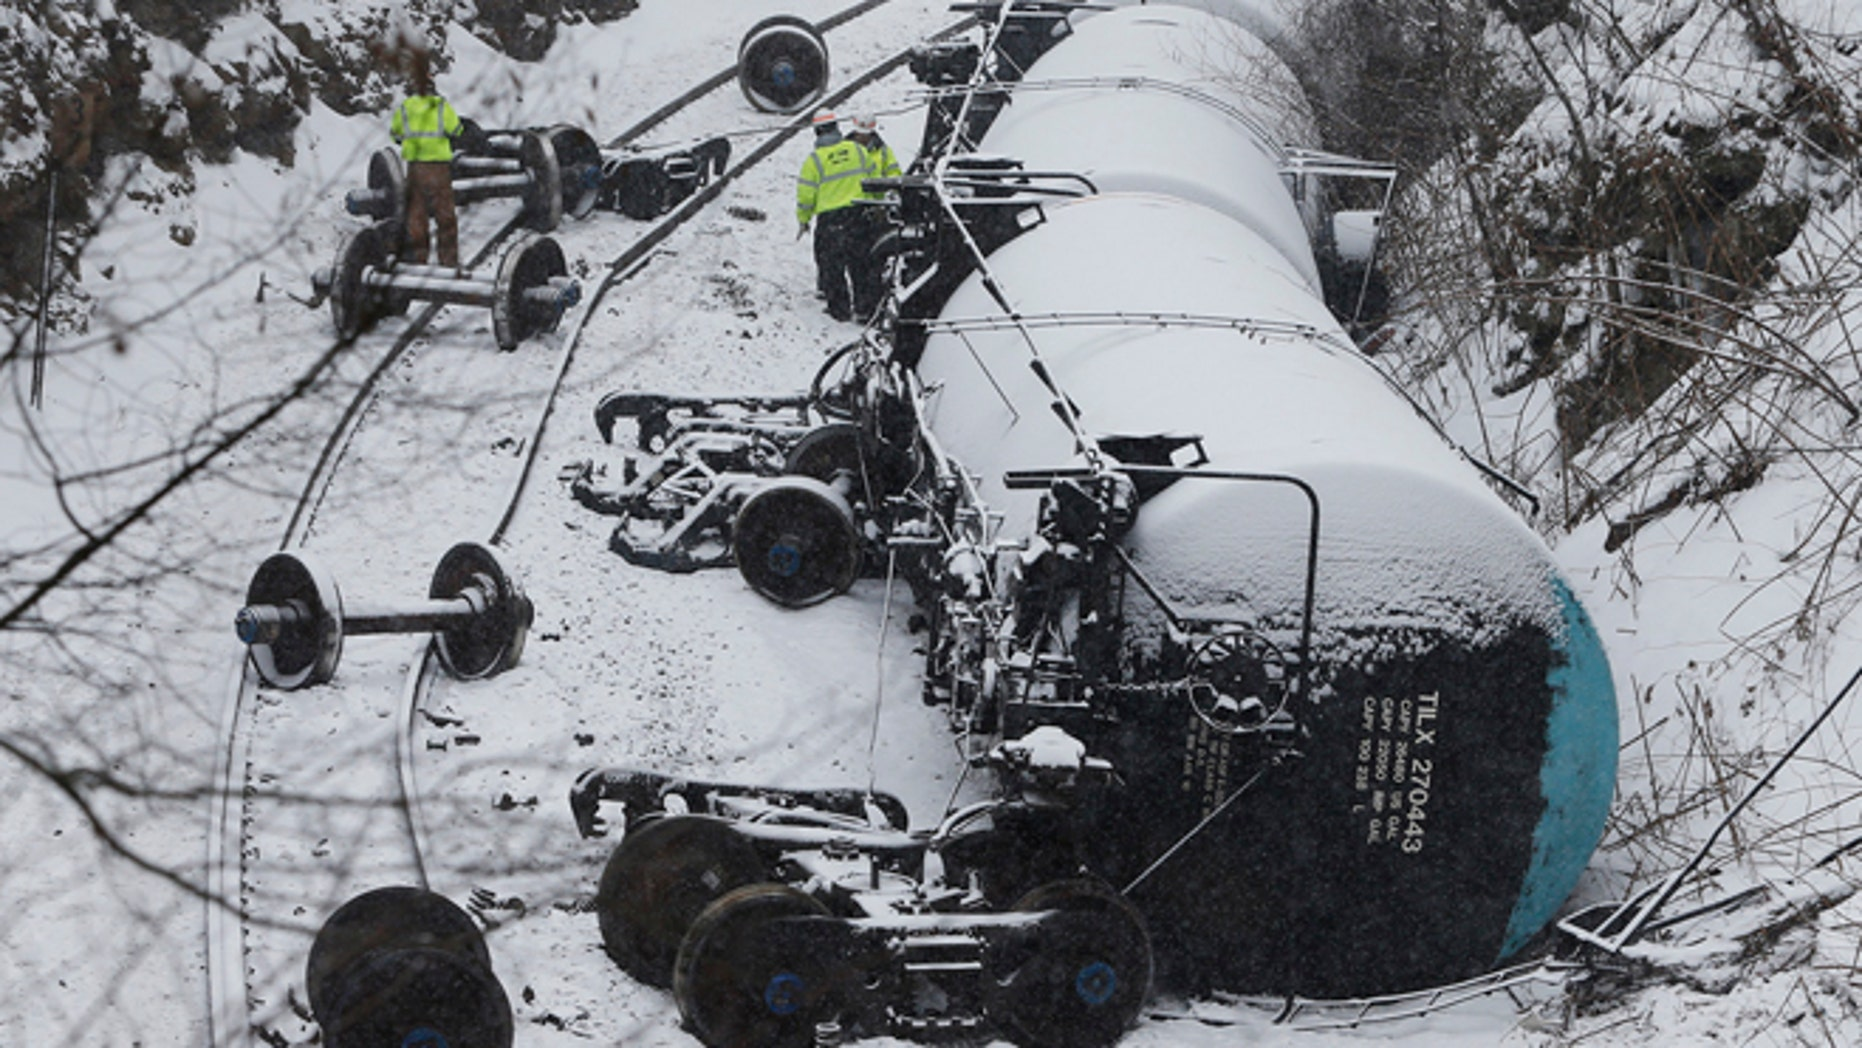 Feb. 13: Emergency personnel examine the wreckage of a train derailment near Vandergrift, Pennsylvania. A 120-car Norfolk Southern Corp train carrying heavy Canadian crude oil derailed and spilled in western Pennsylvania on Thursday, adding to a string of recent accidents that have prompted calls for stronger safety standards.